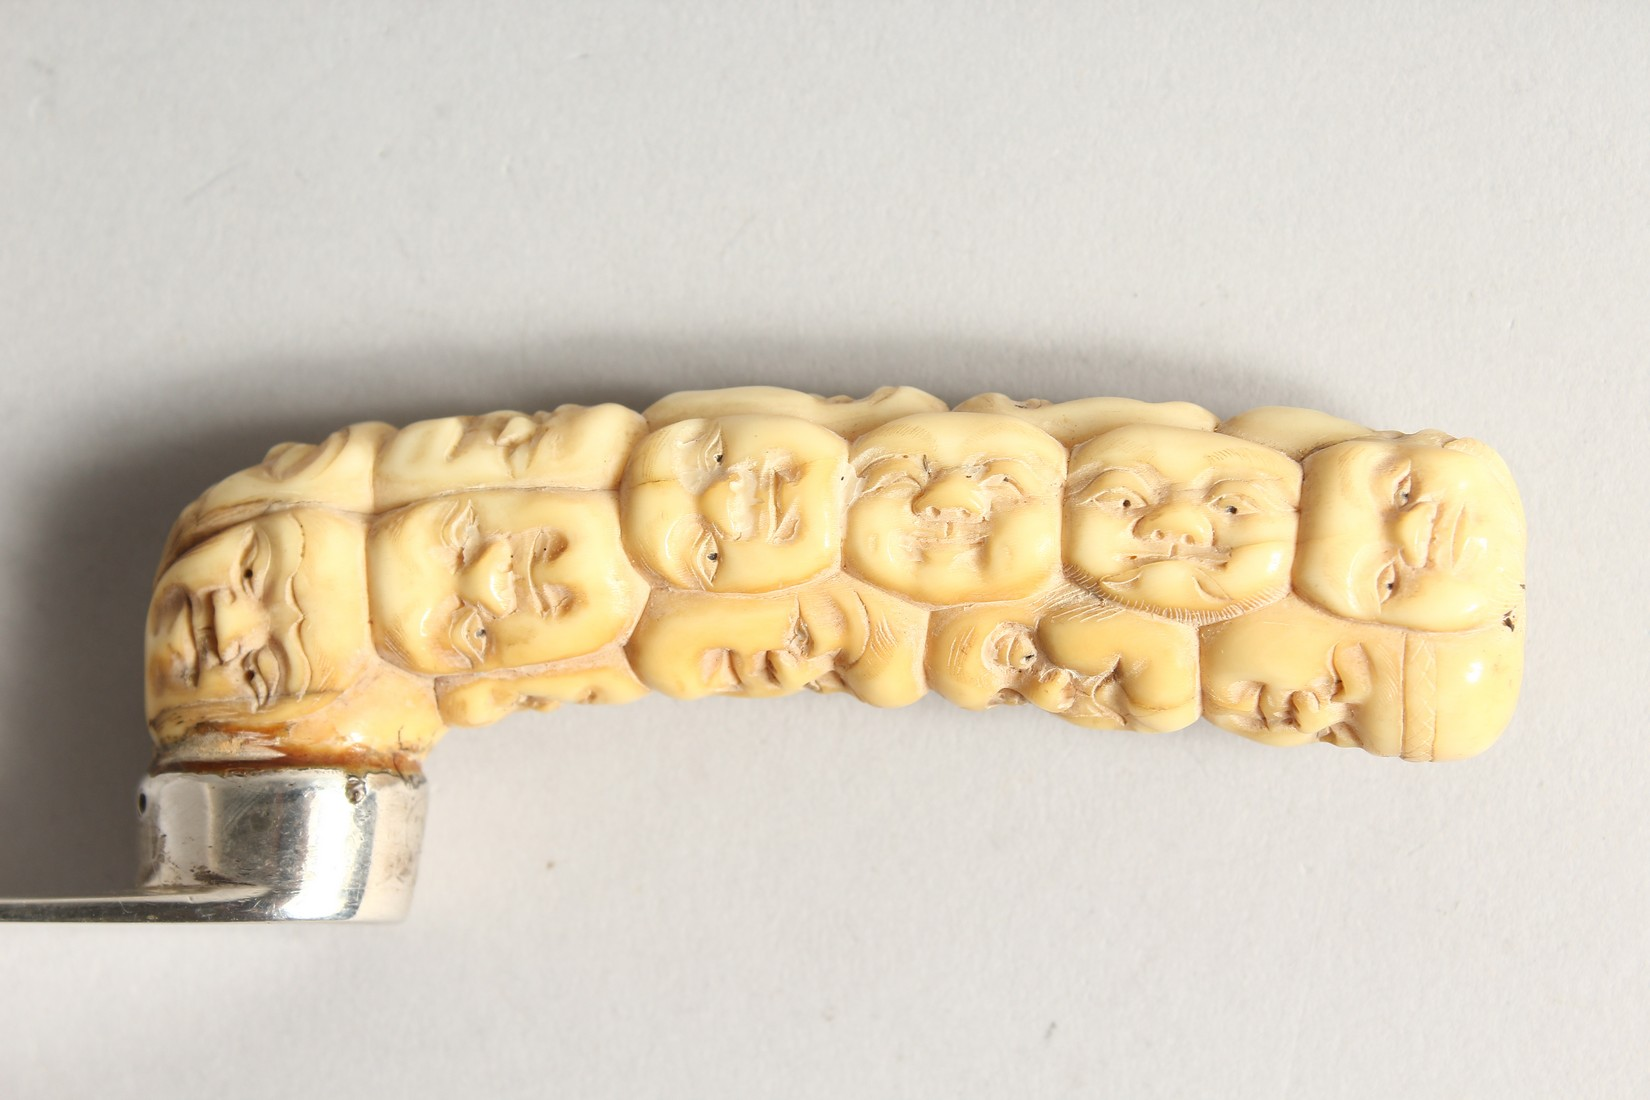 A SILVER LETTER OPENER with carved bone Chinese handles. 10 ins long, London 1804. - Image 4 of 9